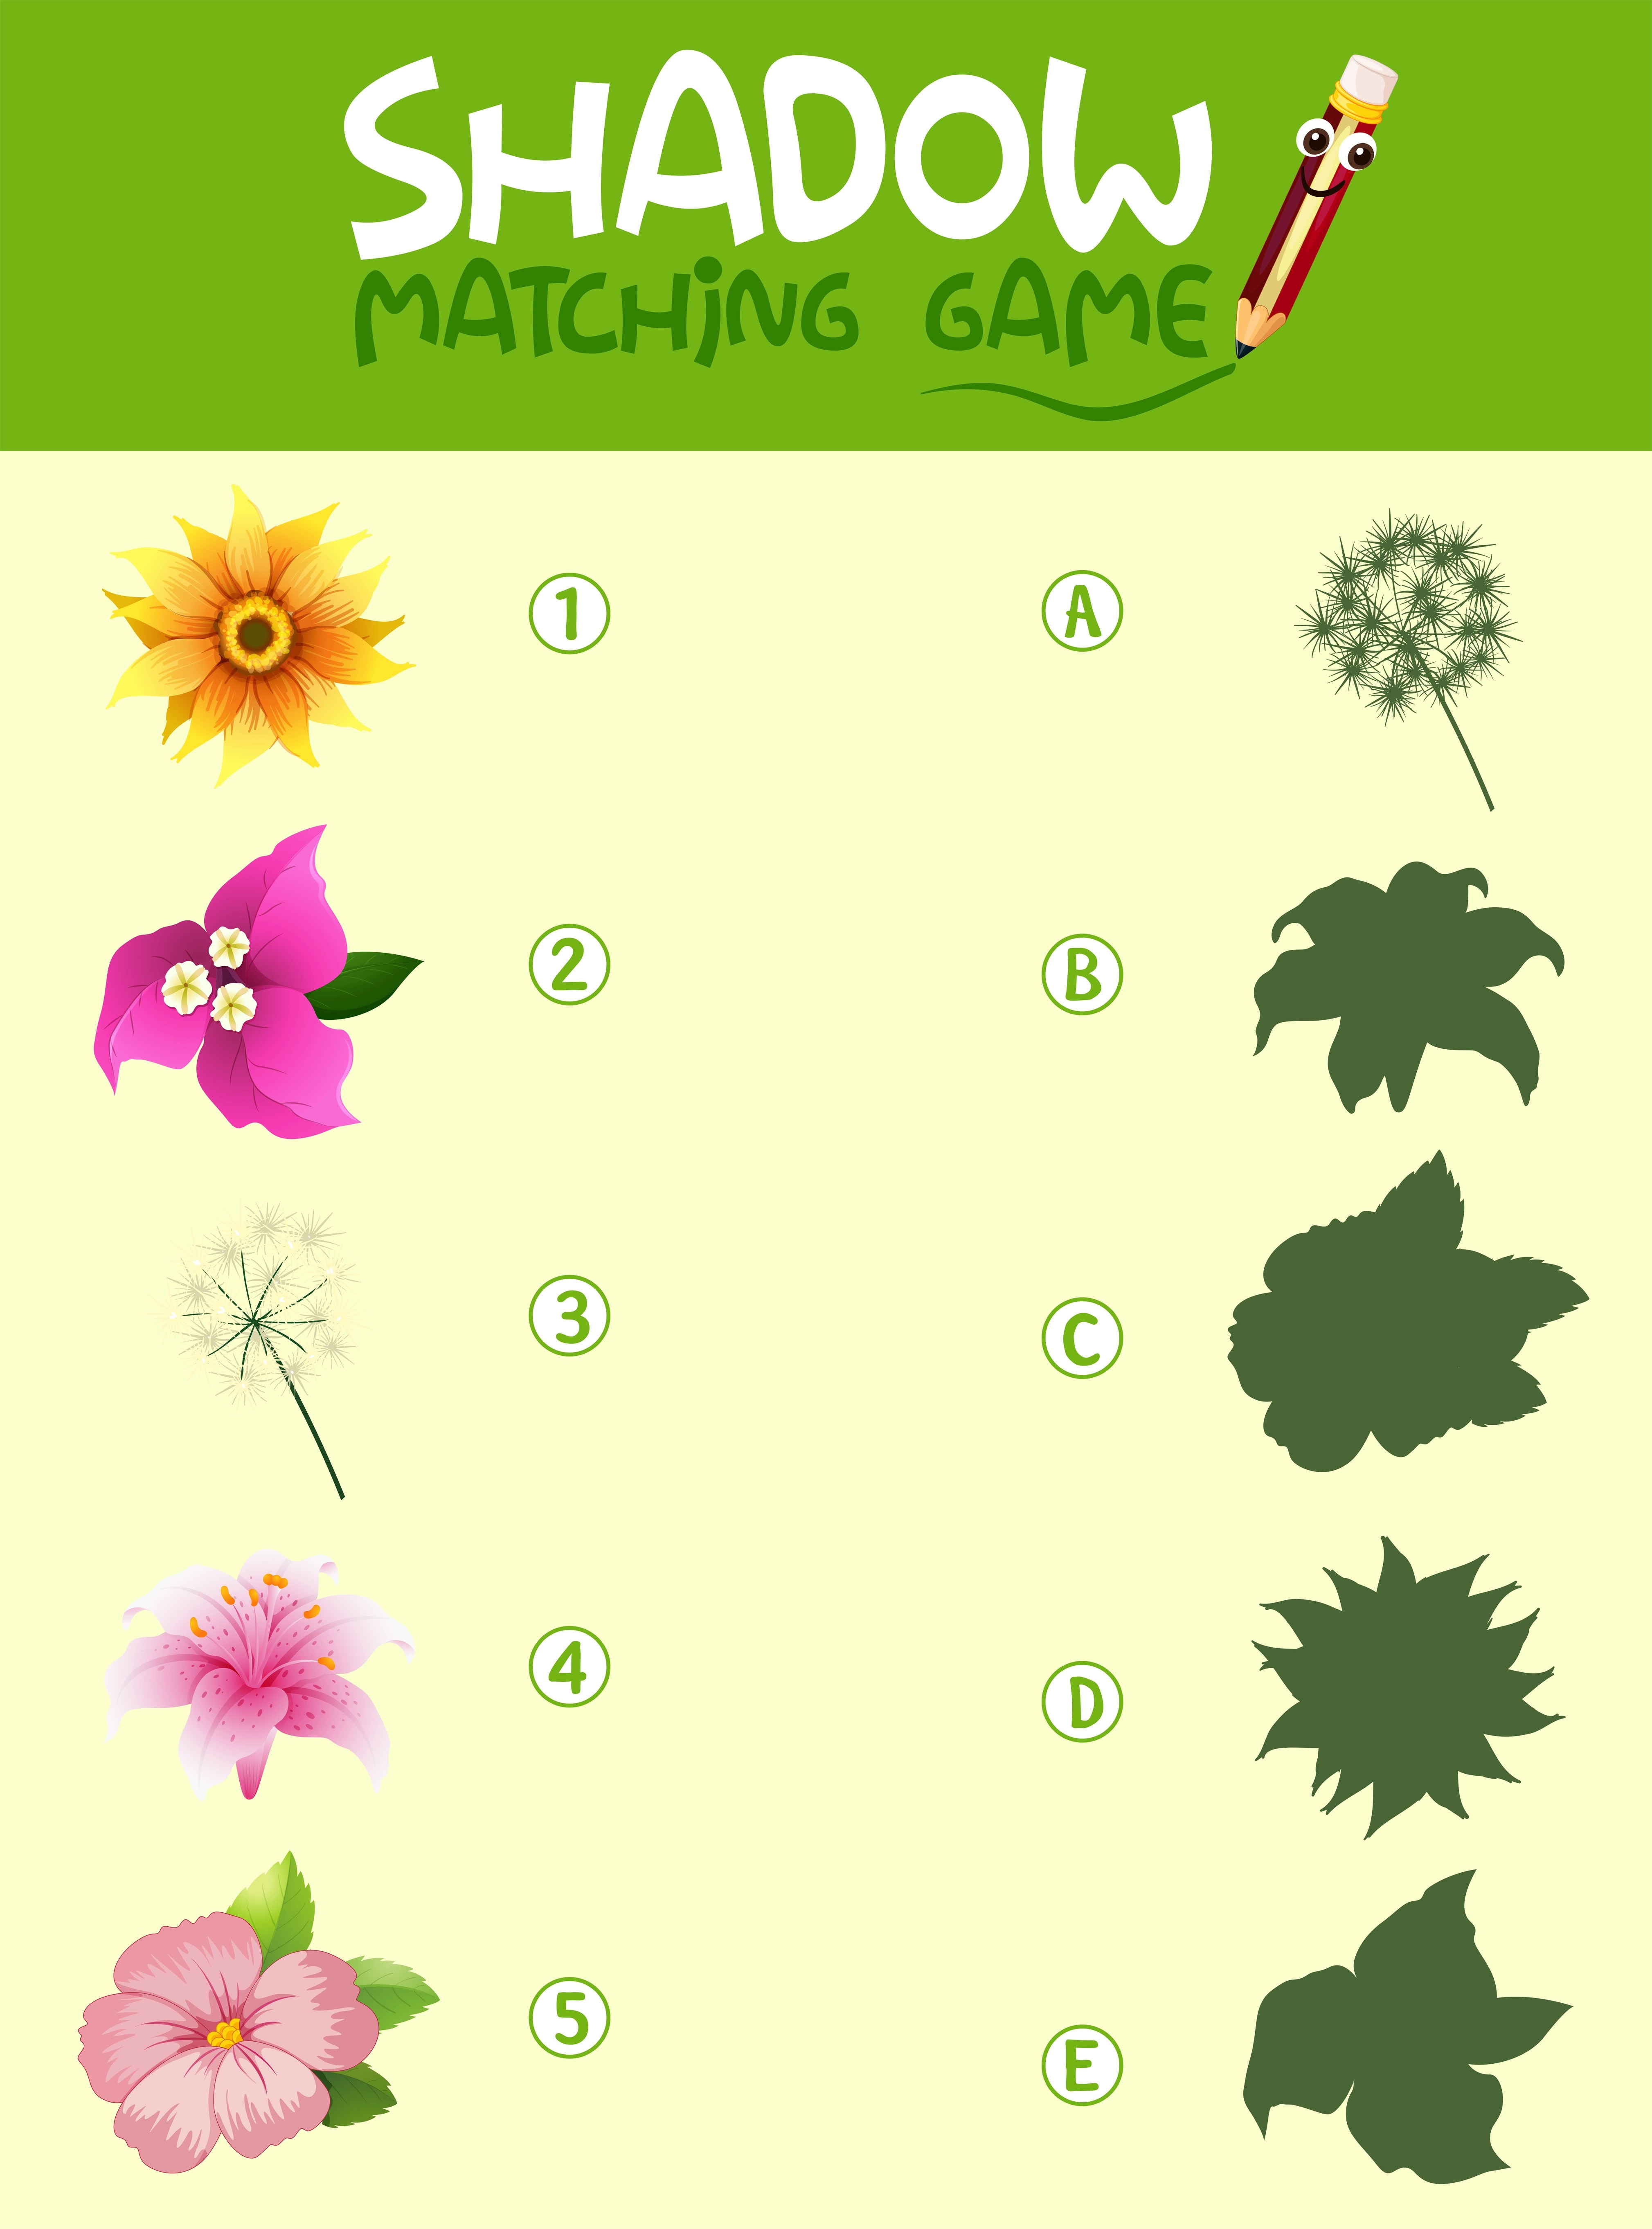 Flower Shadow Matching Game Template